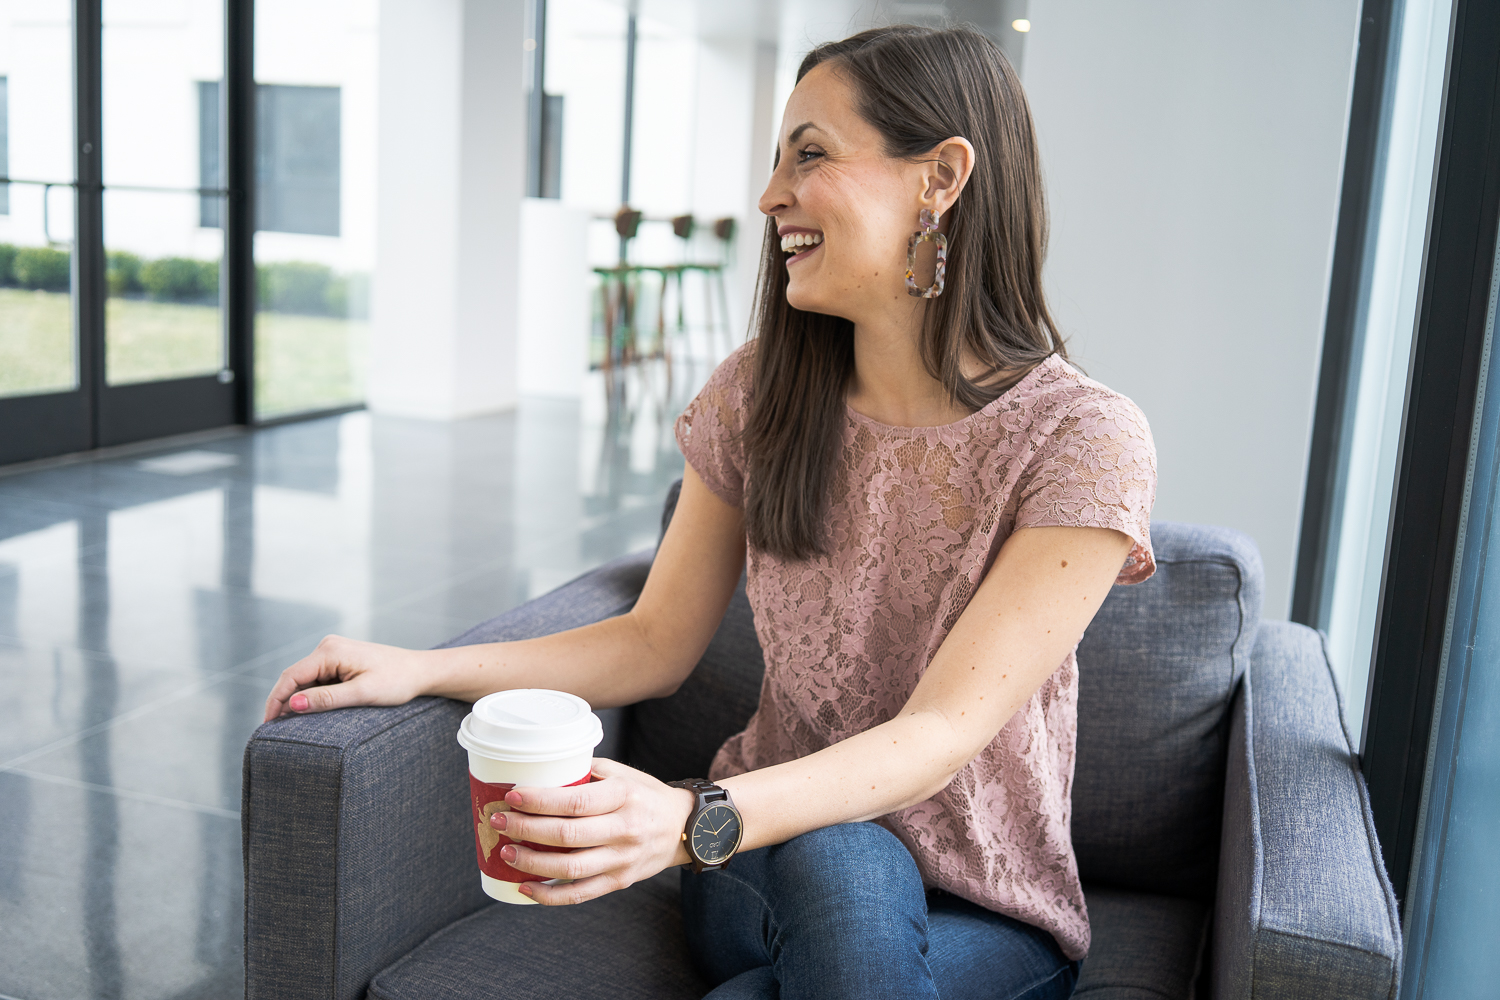 6 Tips for Making Better Use of Your Time -- The Life She Wanders